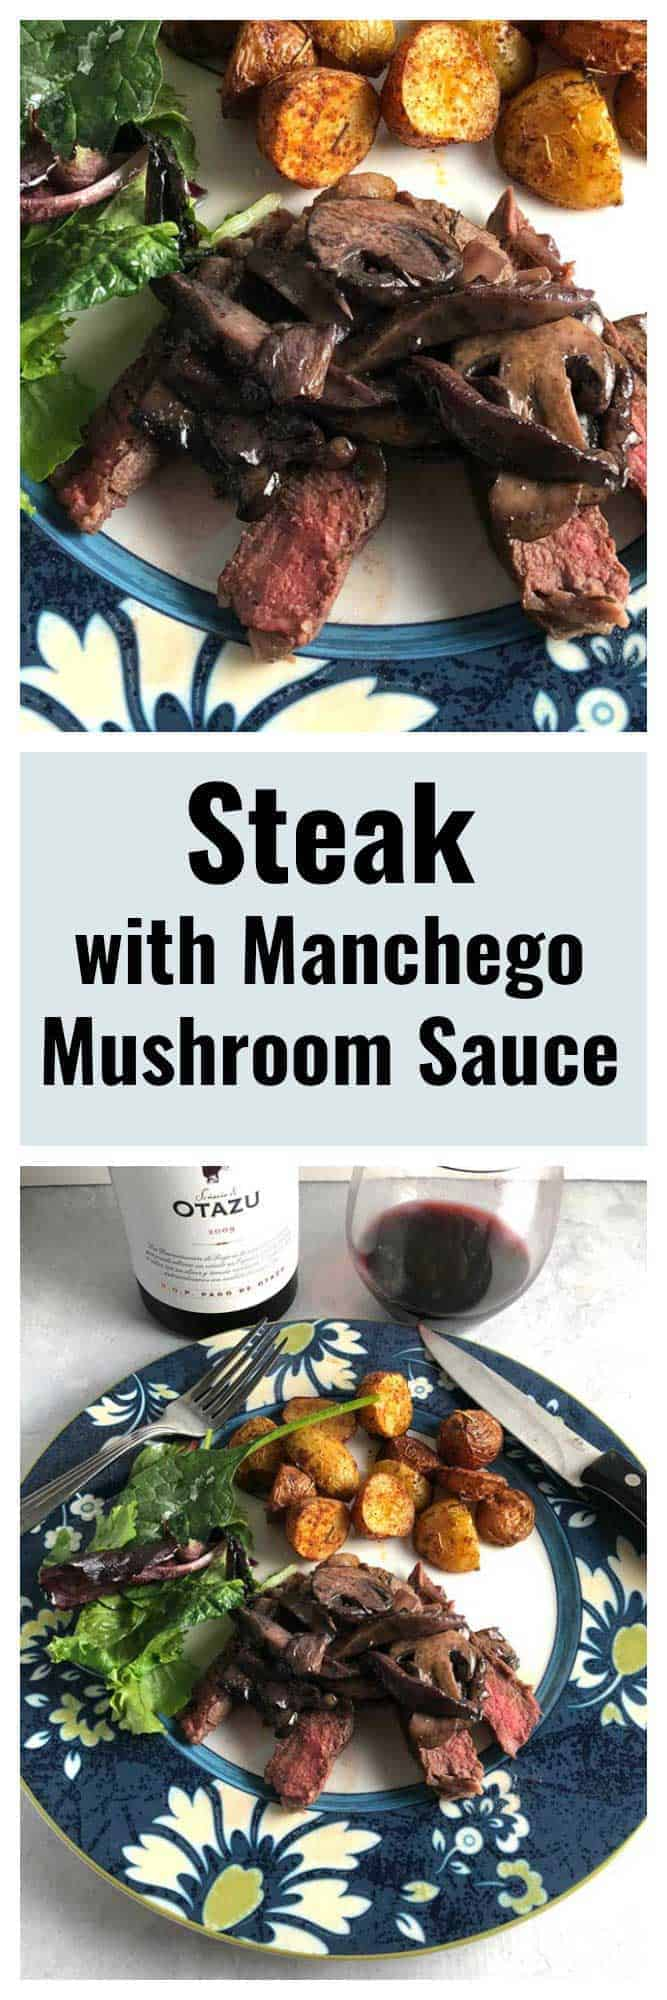 Roasted steak topped with a delicious Manchego mushroom sauce. Pair with a Spanish red wine for a great gourmet meal! #winepairing #steak #Manchego #mushrooms #gourmet #sponsored